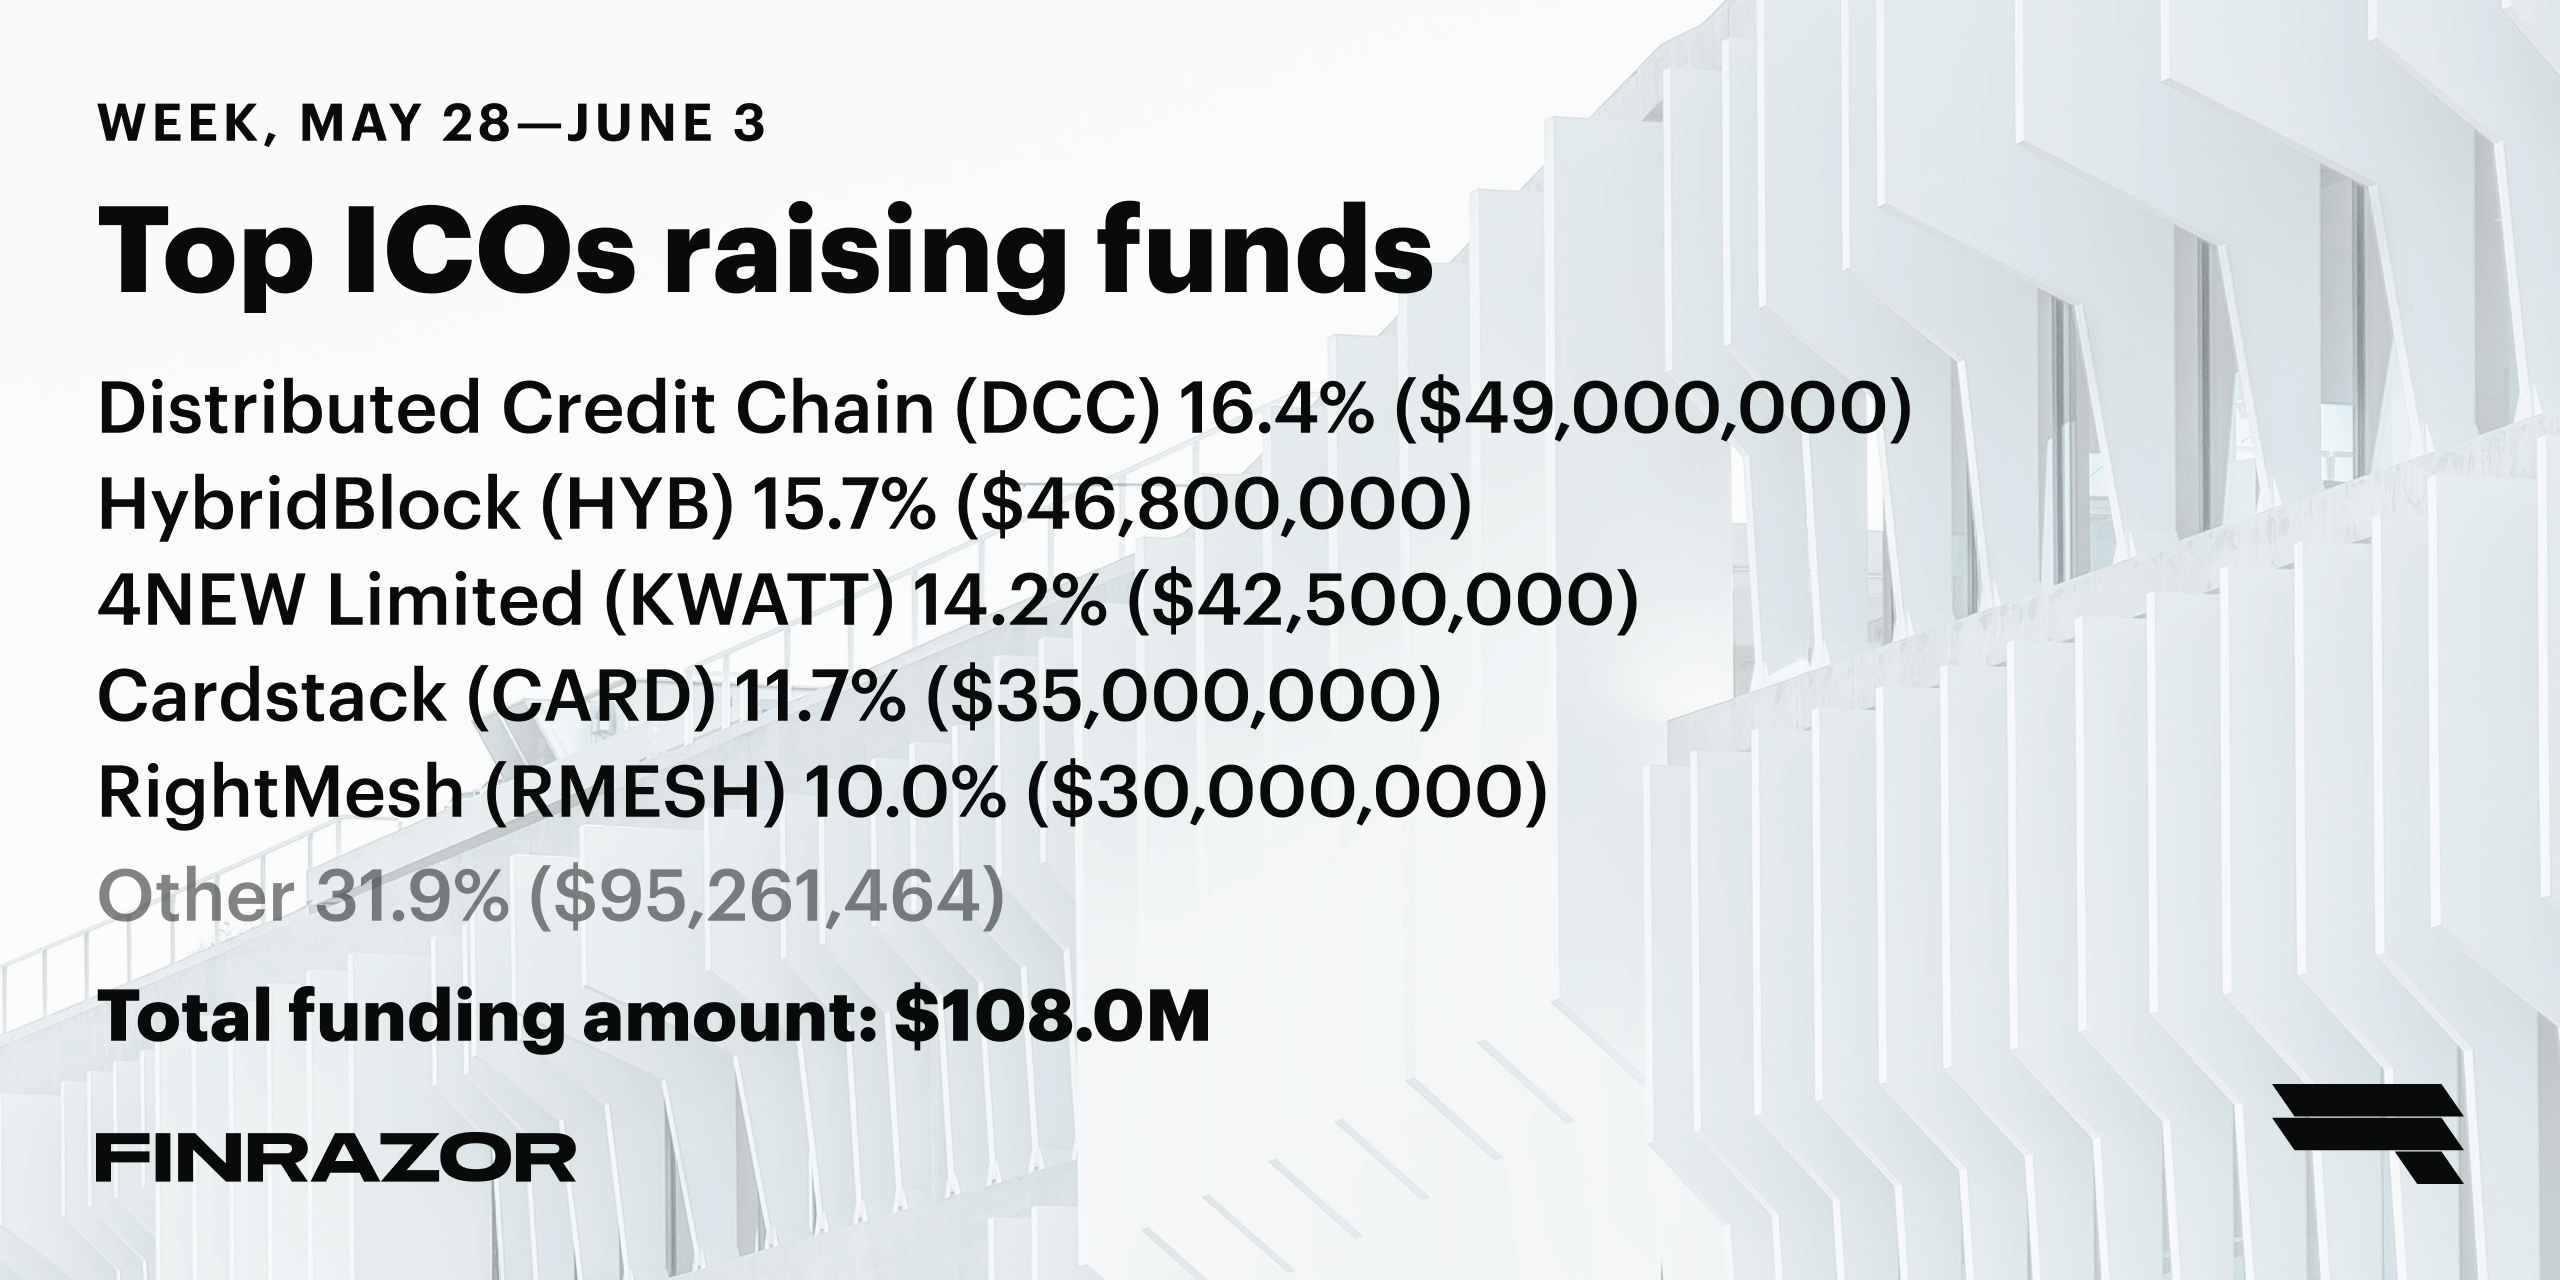 Top ICOs raising funds, Week 22 '18